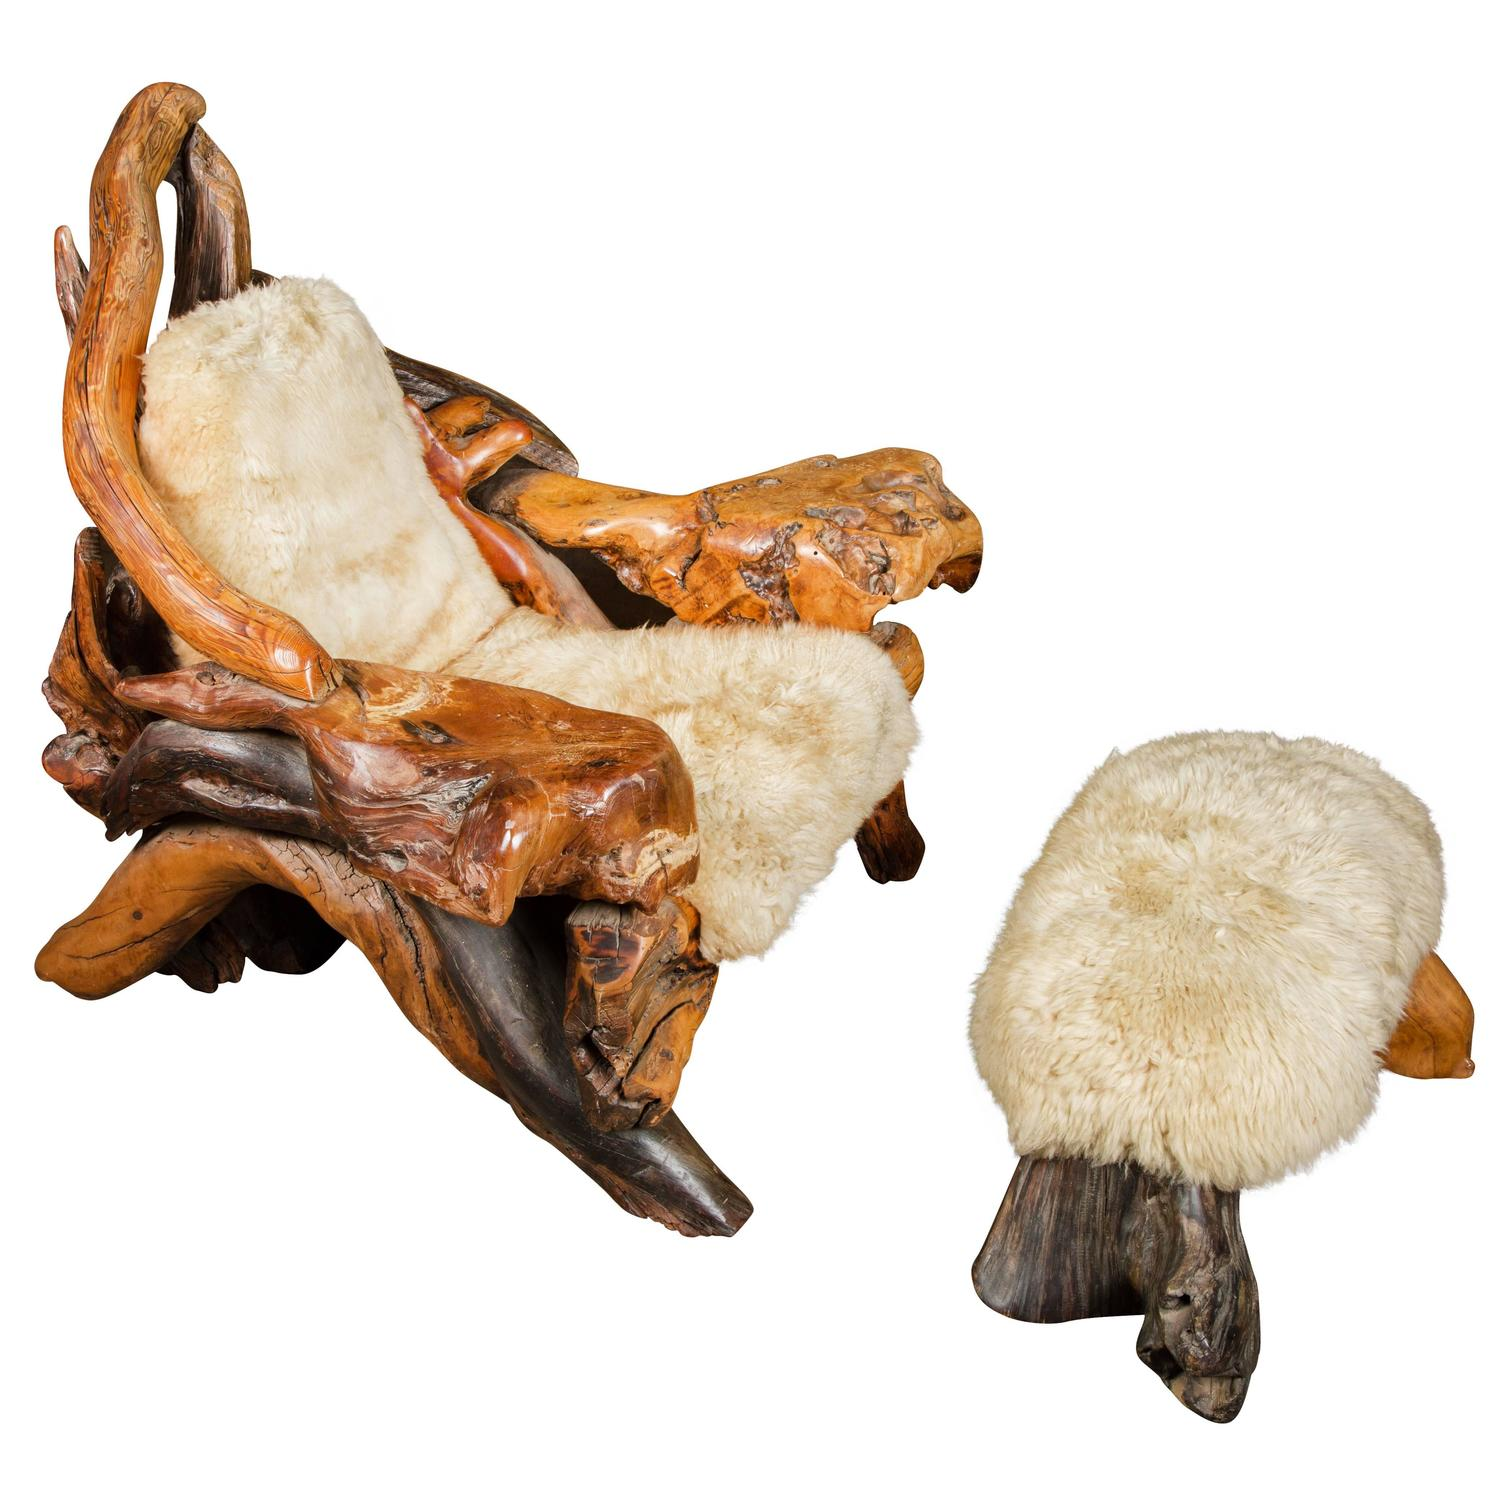 Sheepskin Lounge Chairs 65 For Sale at 1stdibs